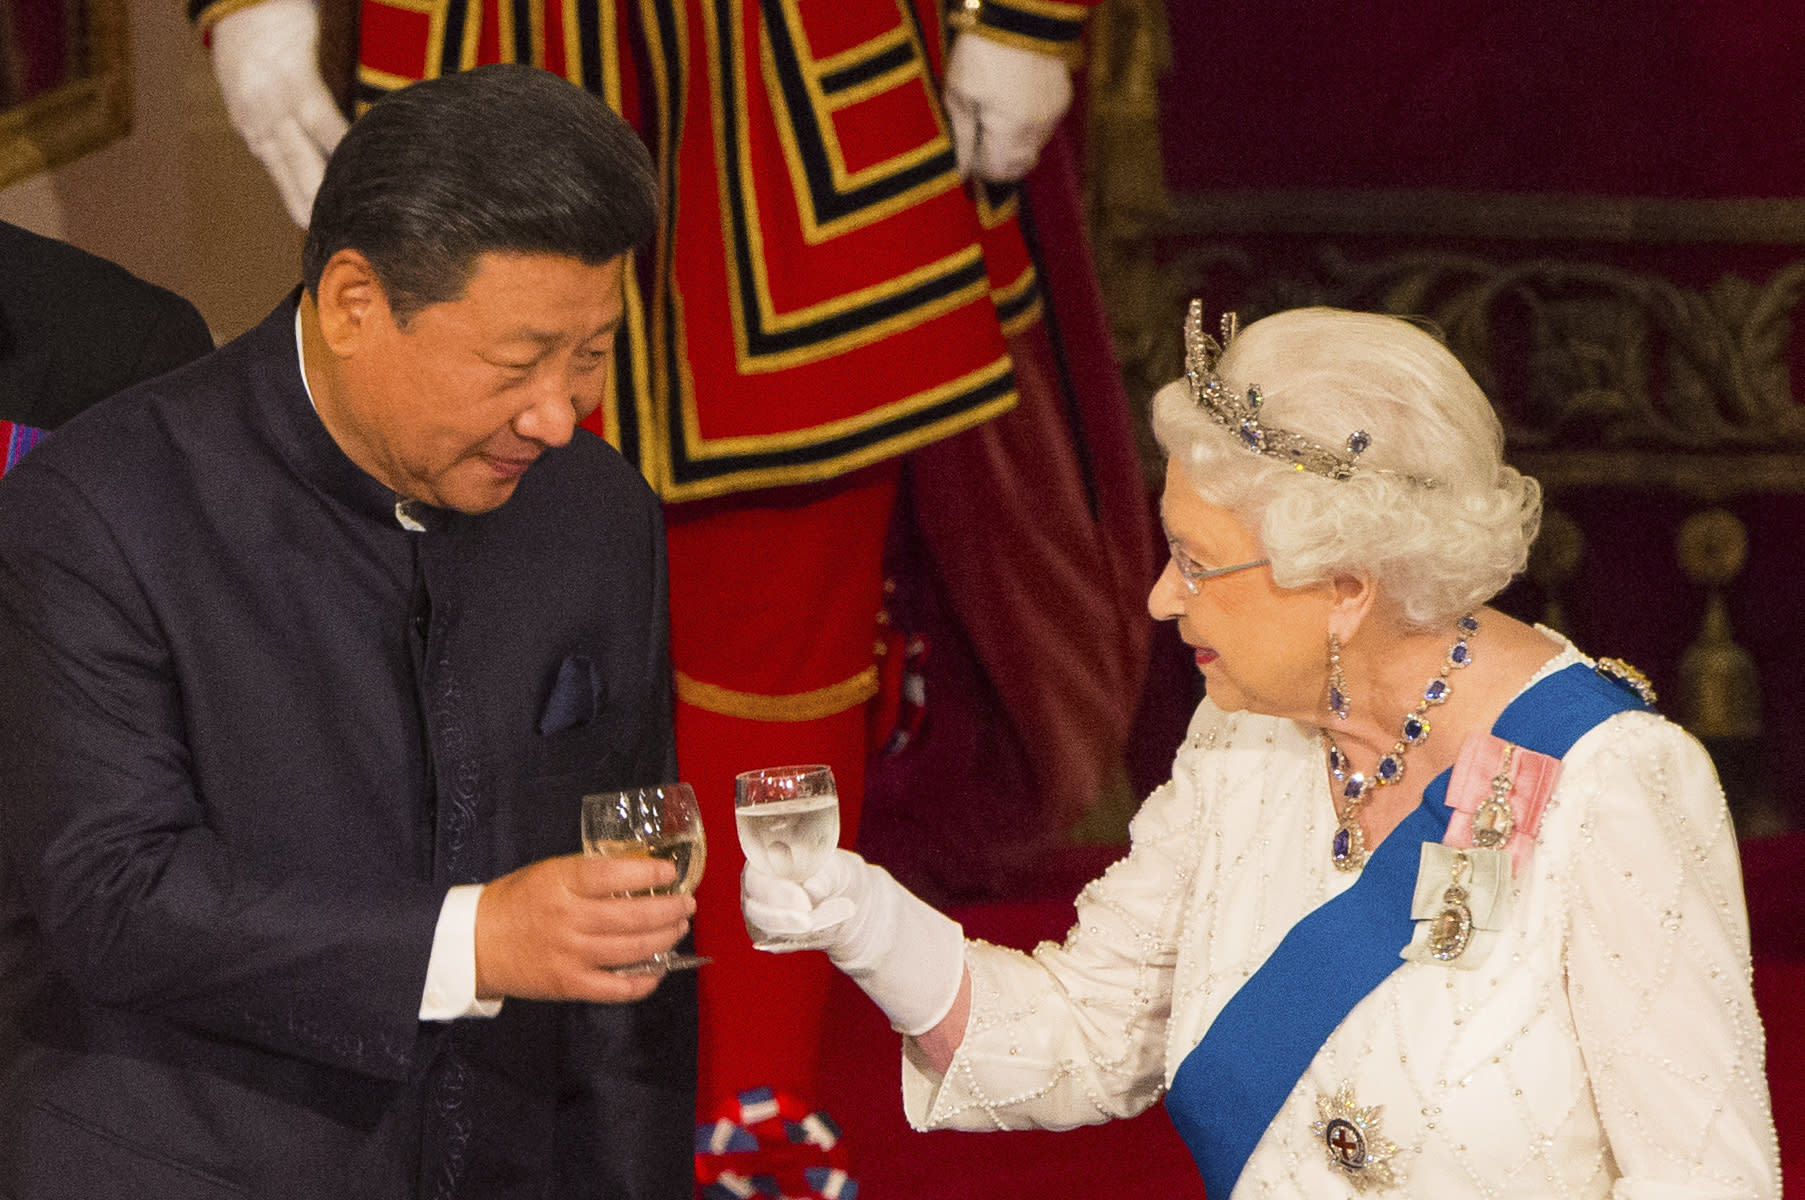 "FILE - In this Tuesday Oct. 20, 2015 file photo, Chinese President Xi Jinping with Britain's Queen Elizabeth II during a state banquet at Buckingham Palace, London, on the first day of the state visit to Britain. Only five years ago, former British Prime Minister David Cameron was celebrating a ""golden era"" in U.K.-China relations, bonding with President Xi Jinping over a pint of beer at the pub and signing off trade deals worth billions. Those friendly scenes now seem like a distant memory, with hostile rhetoric ratcheting up this week over Beijing's new national security law on Hong Kong. China has threatened ""consequences"" after Britain offered refuge to millions in the former colony. (Dominic Lipinski/Pool Photo via AP, File)"